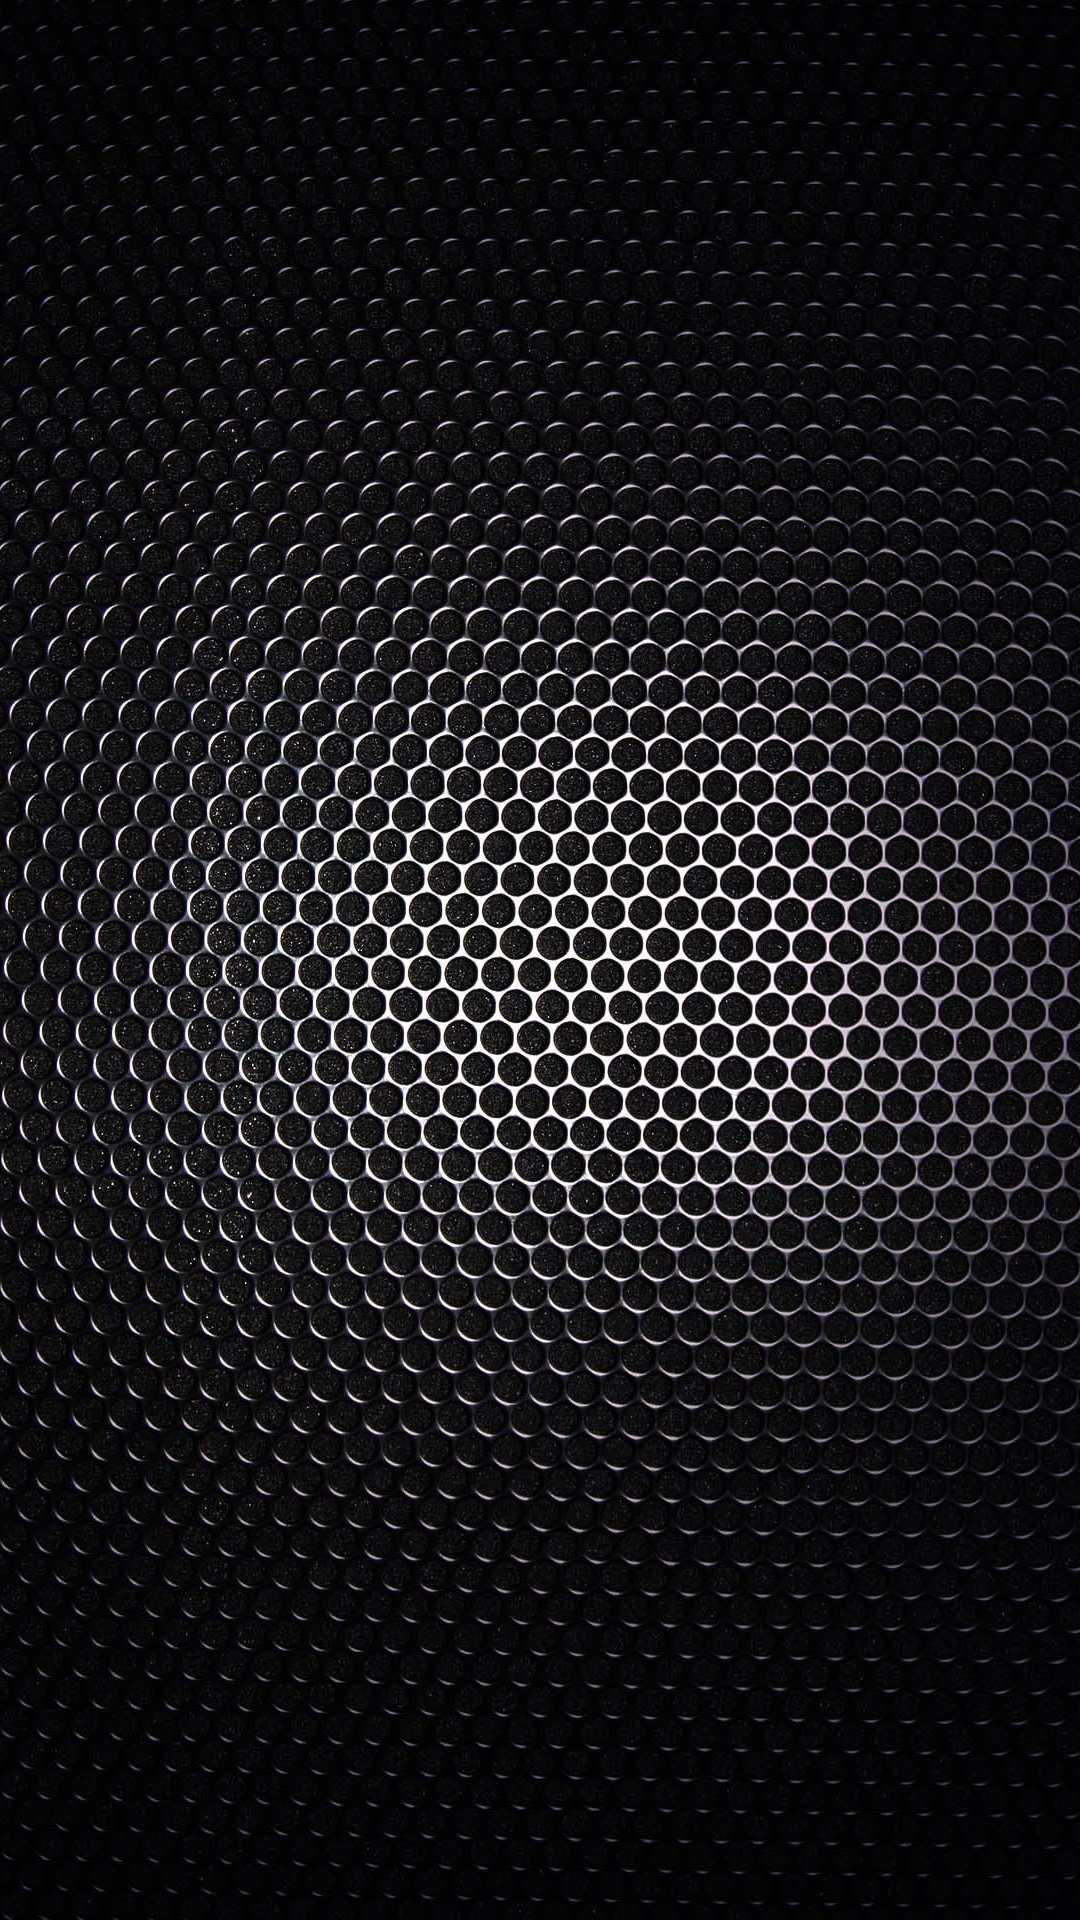 galaxy s4 wallpaper with black metal grid design in 1080x1920 resolution